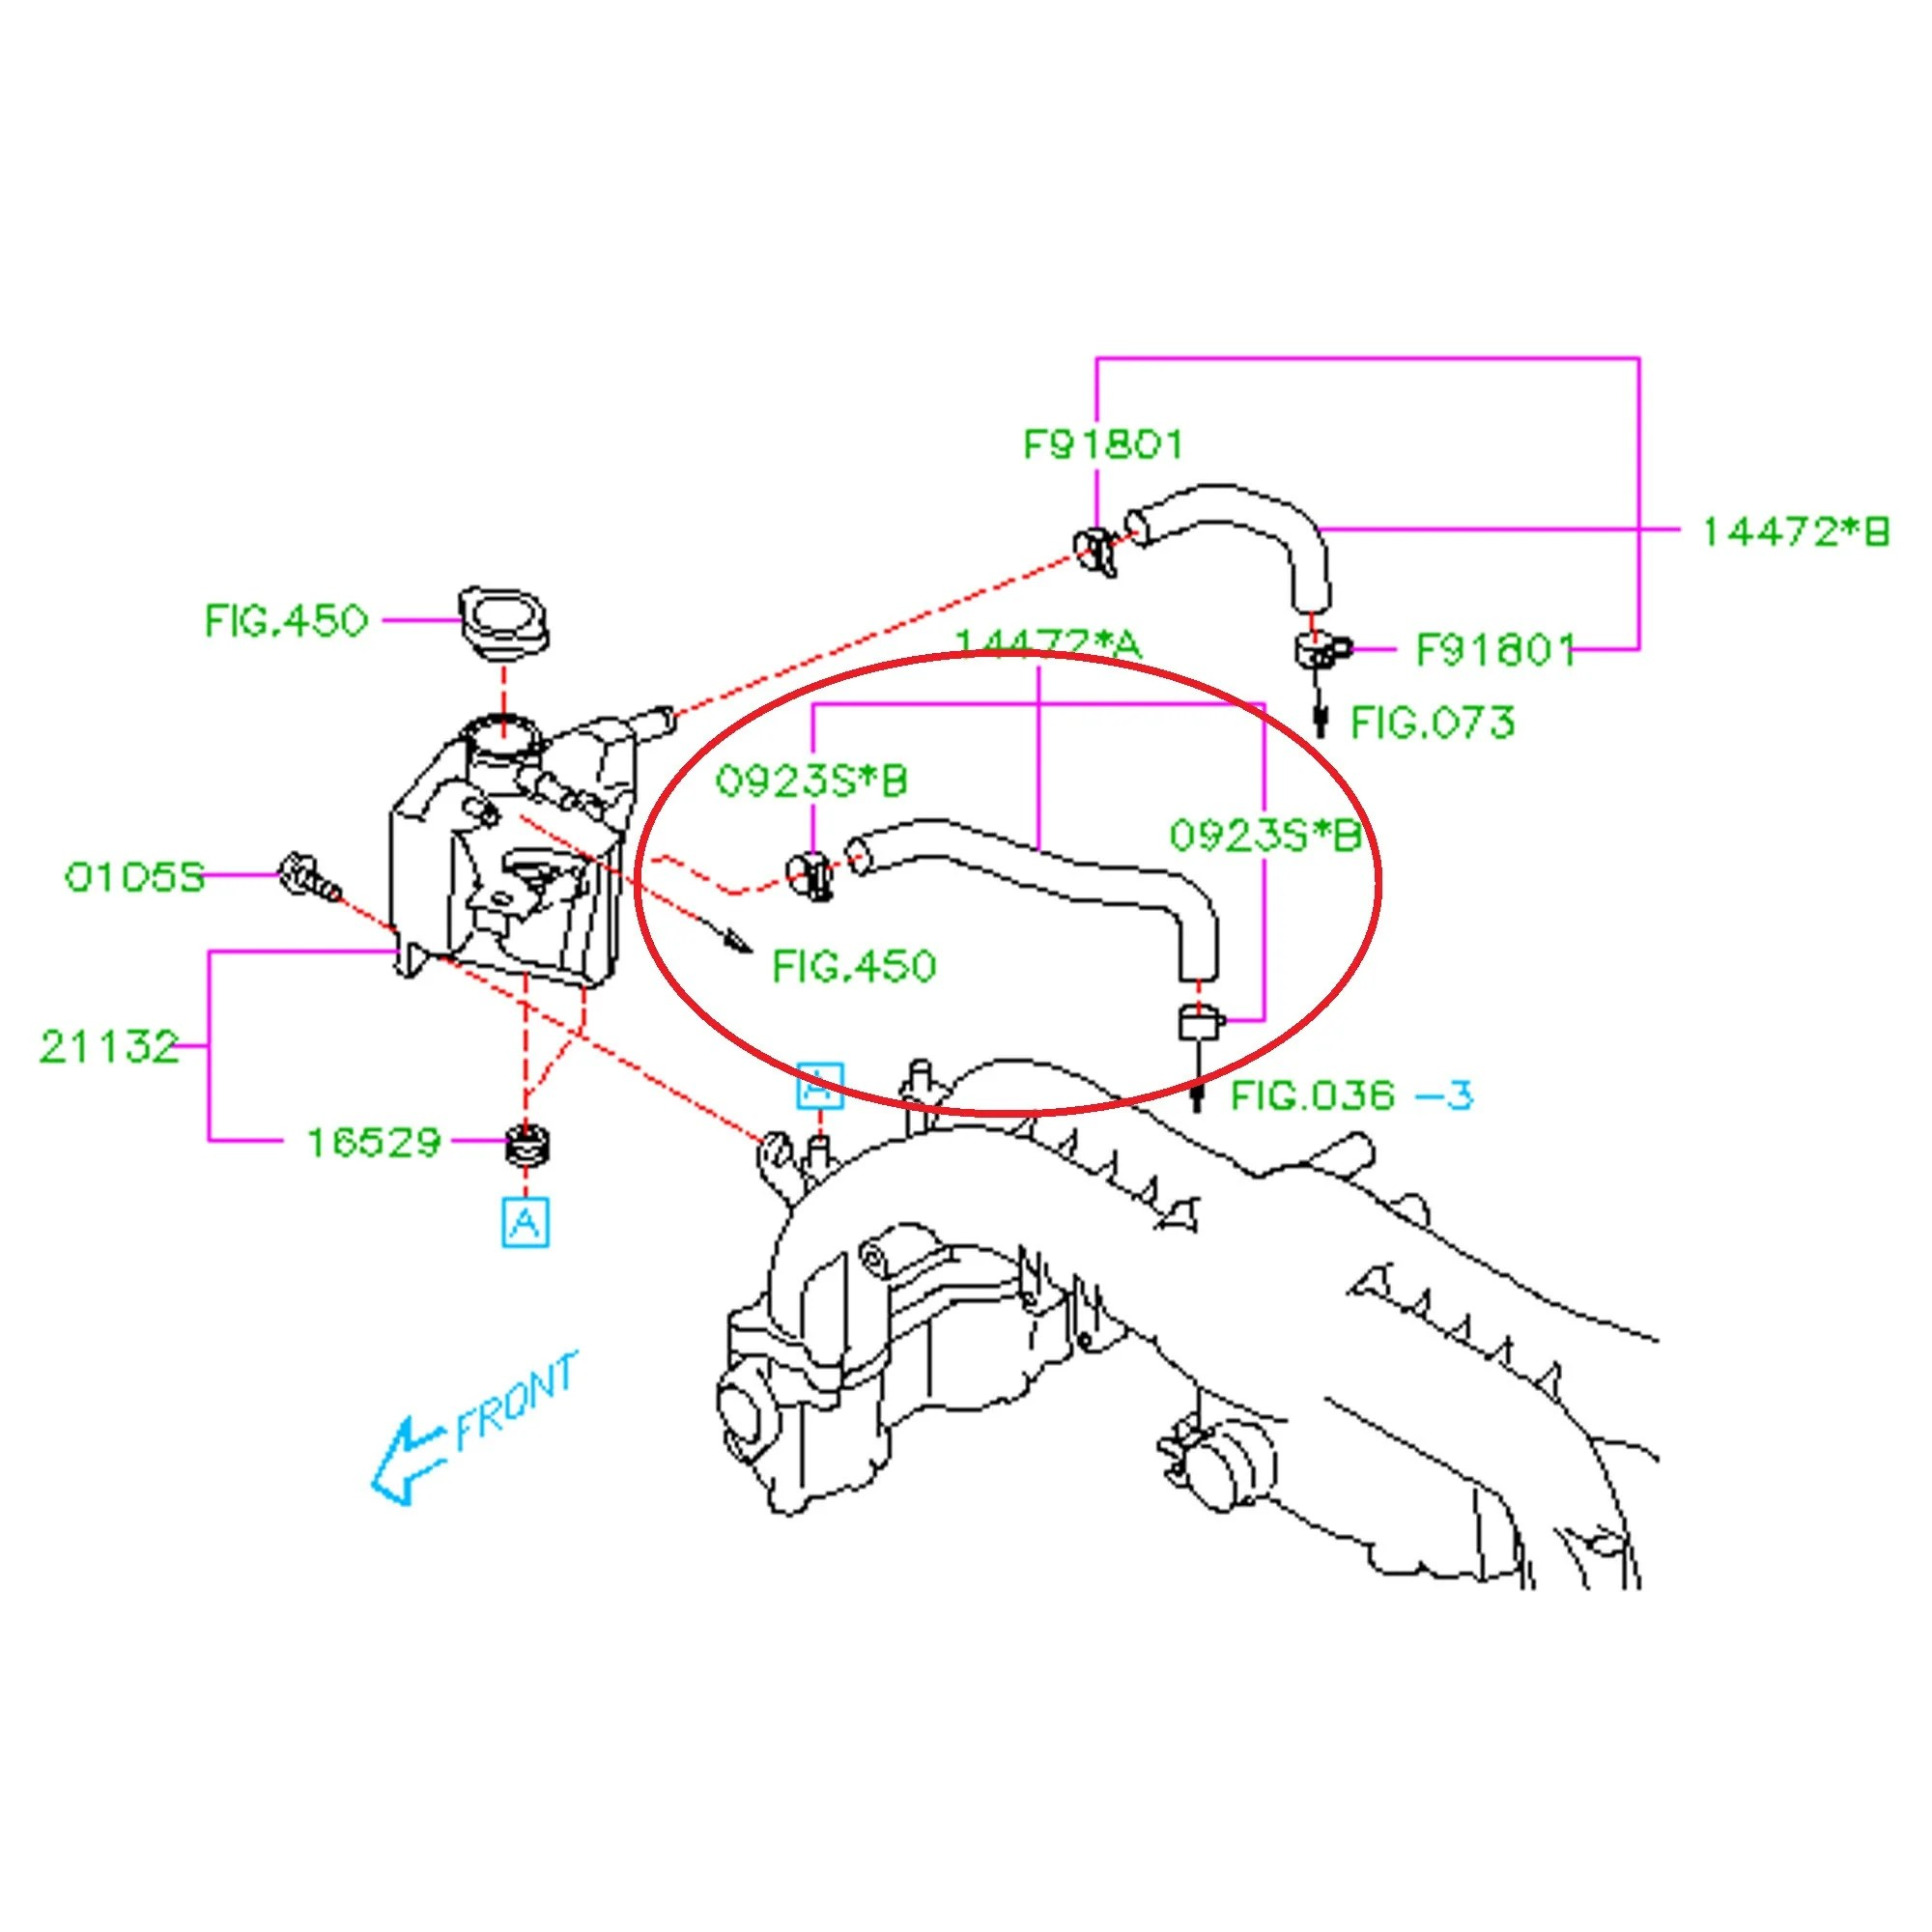 medium resolution of vacuum line diagram on 2004 subaru impreza wrx sti parts diagram subaru wrx wiring diagram 2002